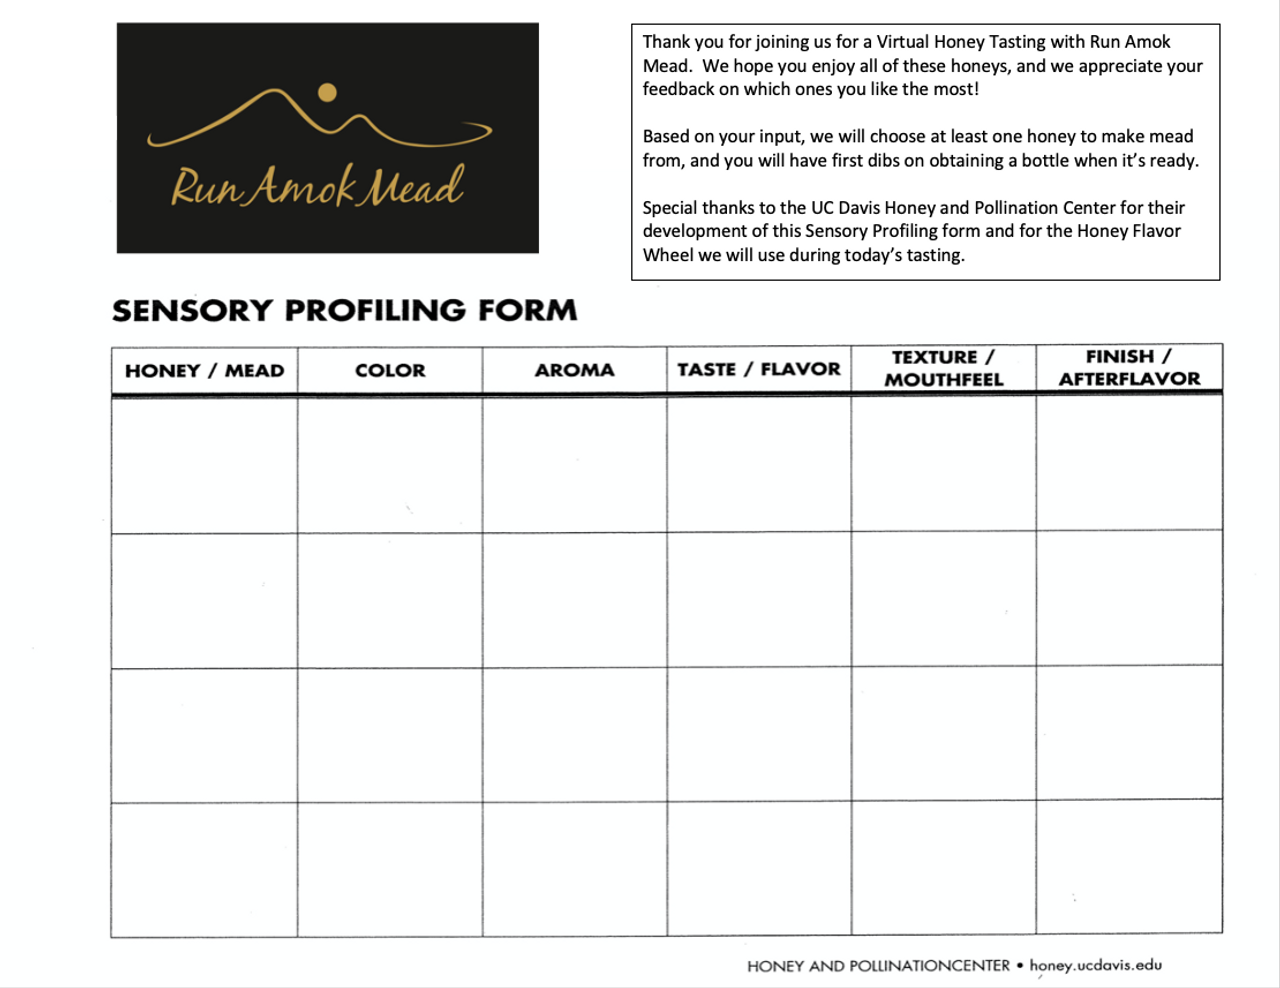 Record your impressions of each honey and share them with us!  We will use your input to decide what honey we will use in our next batch.  Please download and print 2 copies for use during our upcoming Virtual Tasting.  The downloadable file becomes available upon your purchase of the Virtual Honey Tasting.